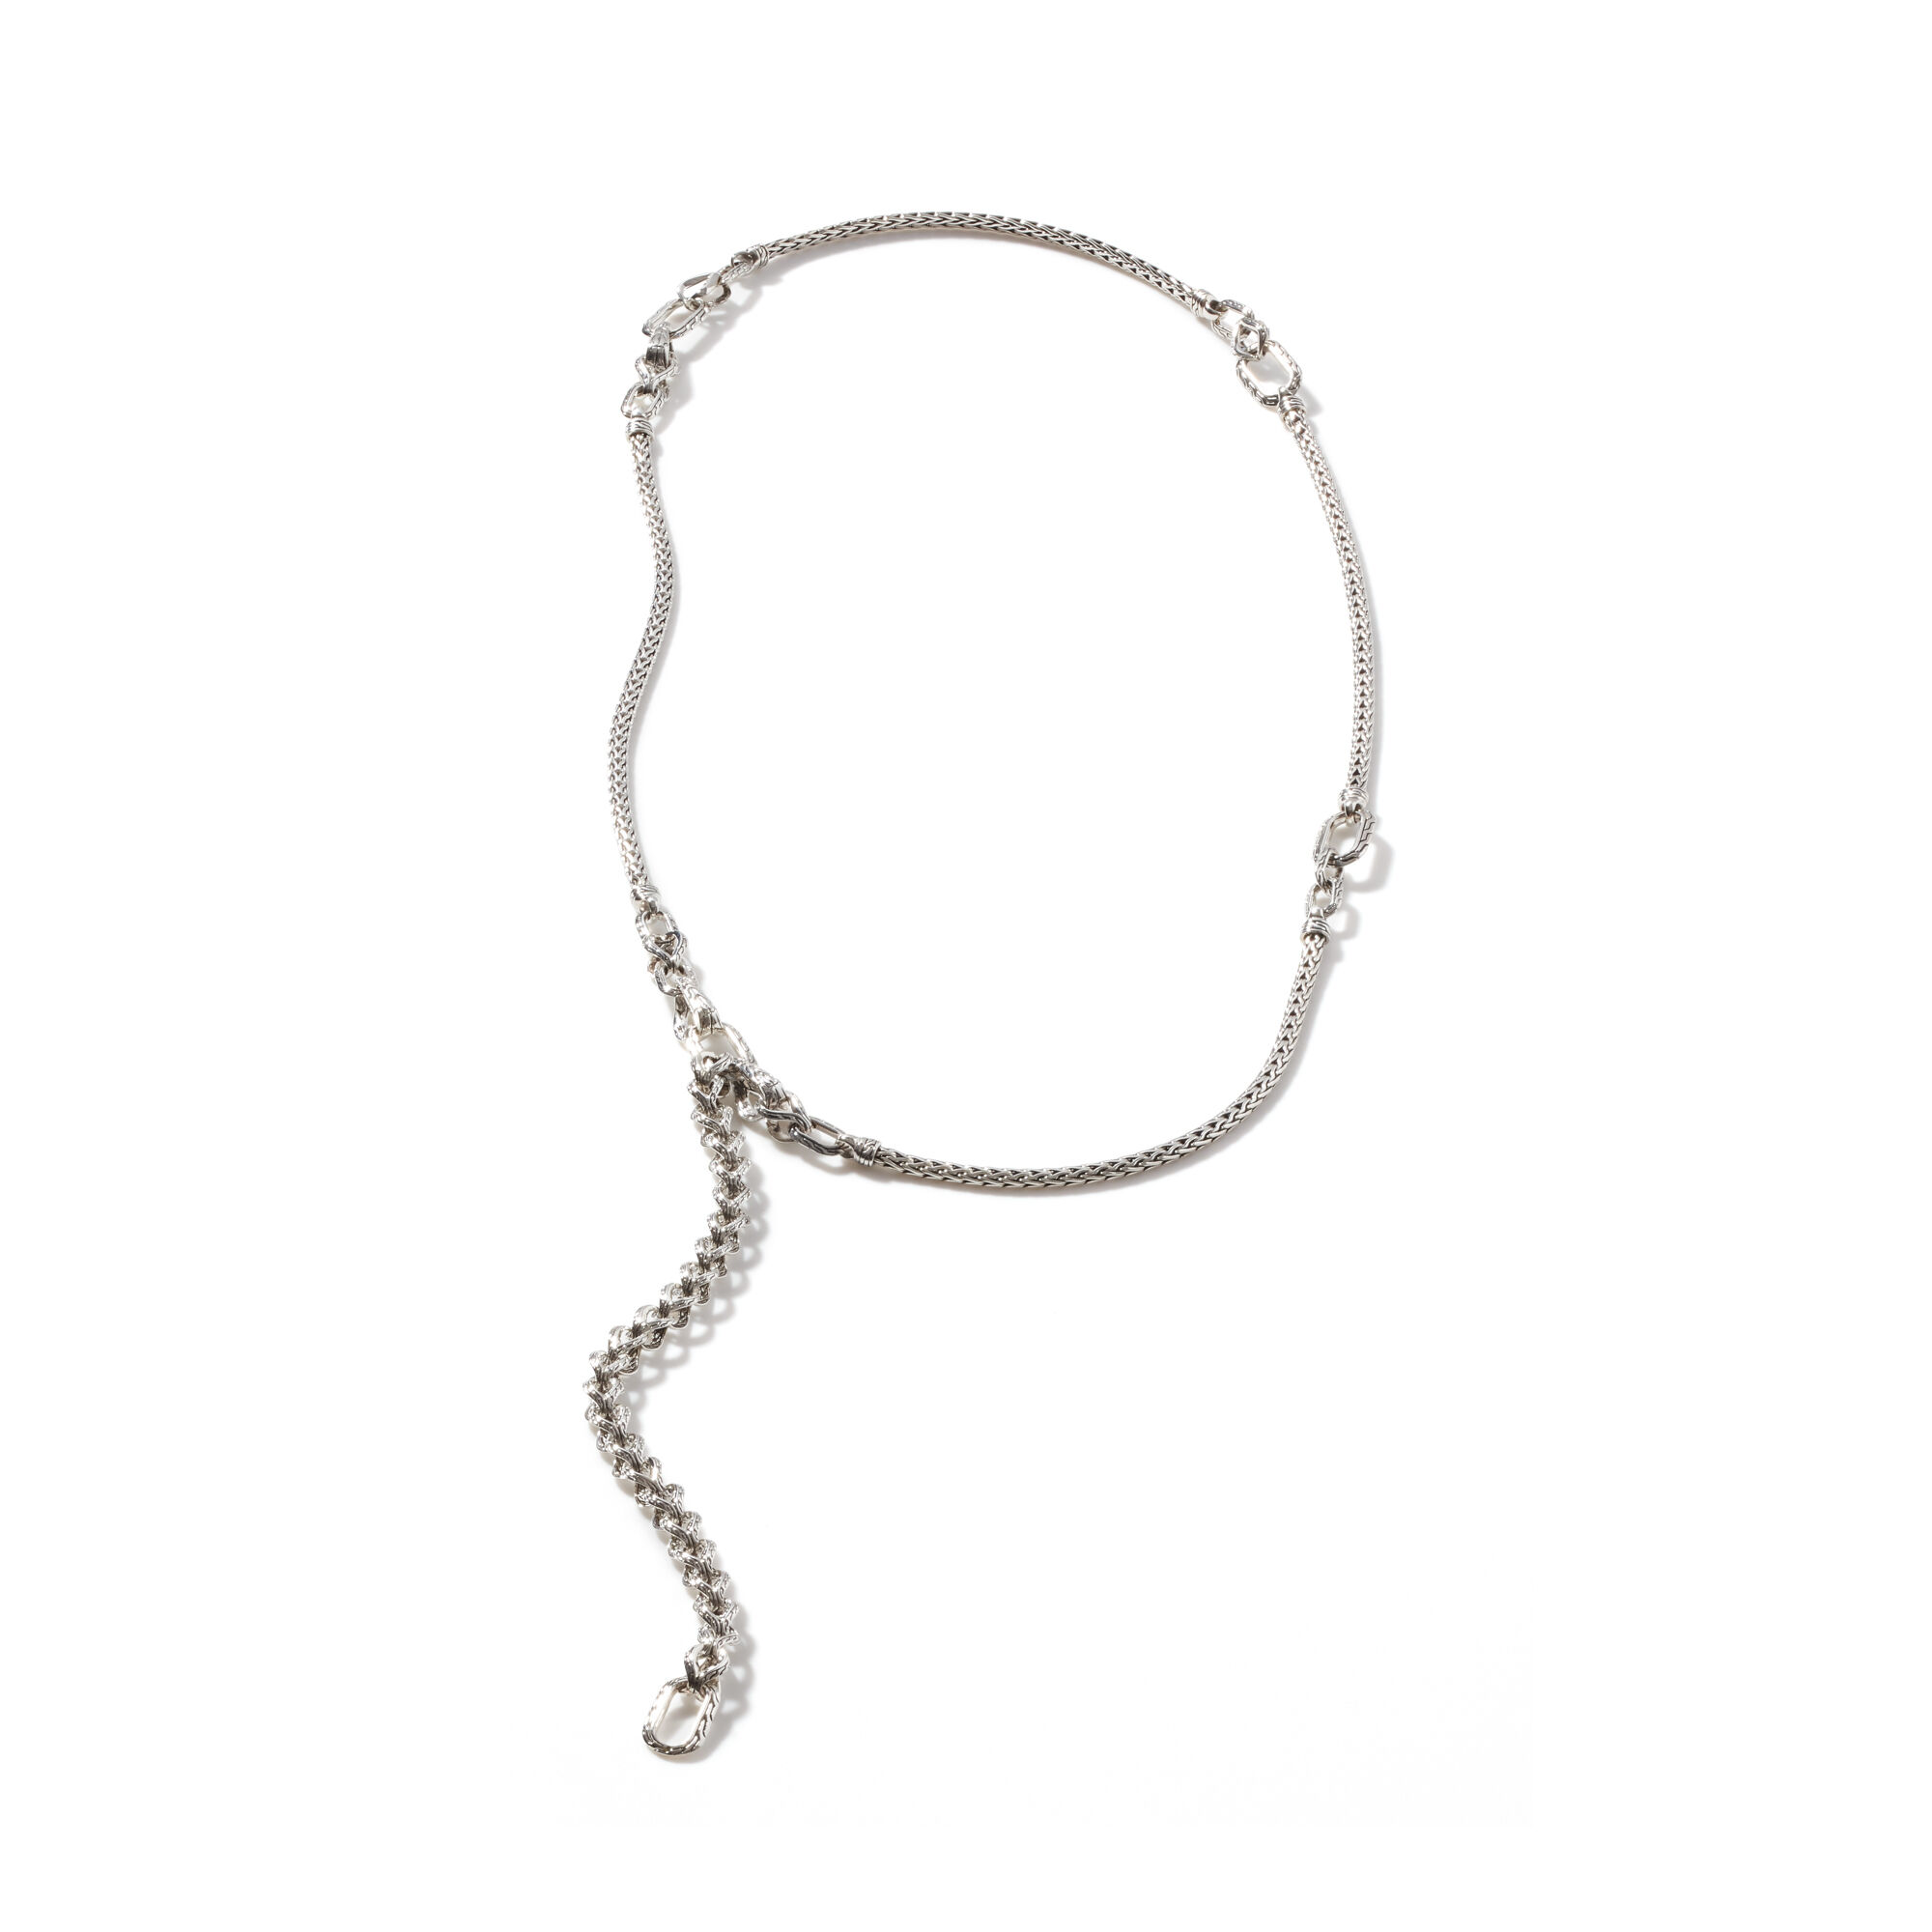 Asli Classic Chain Link Transformable Necklace in Silver, , large